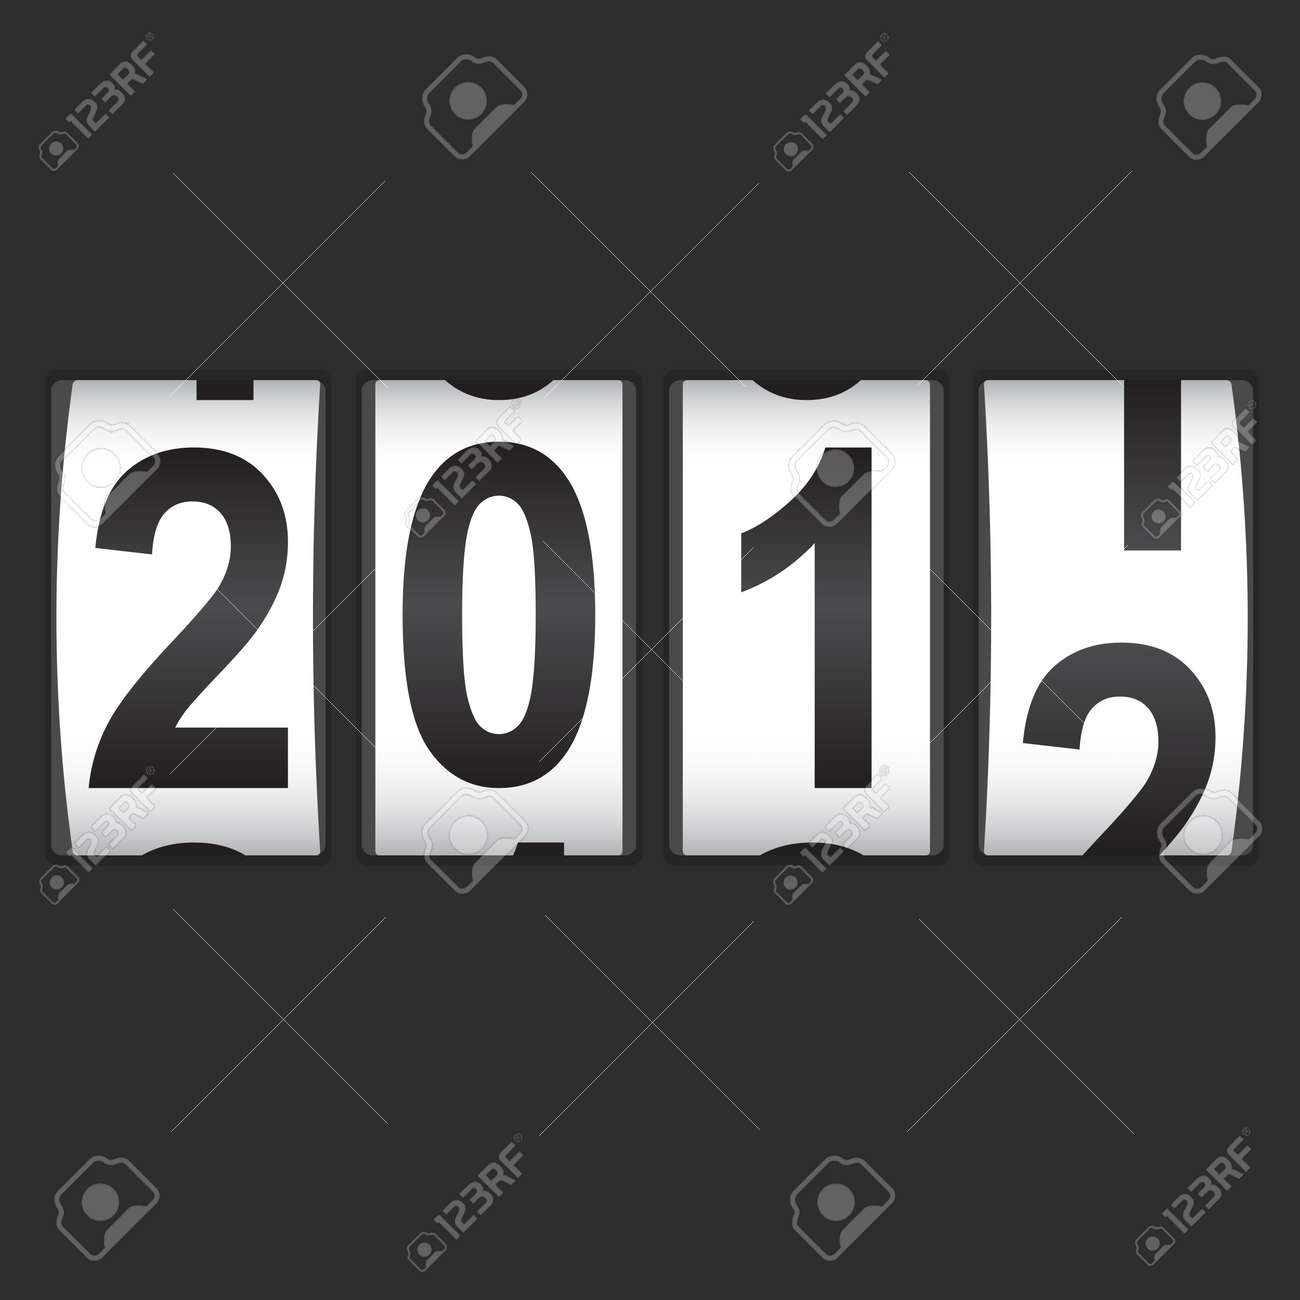 2012 New Year counter. Stock Vector - 11171878